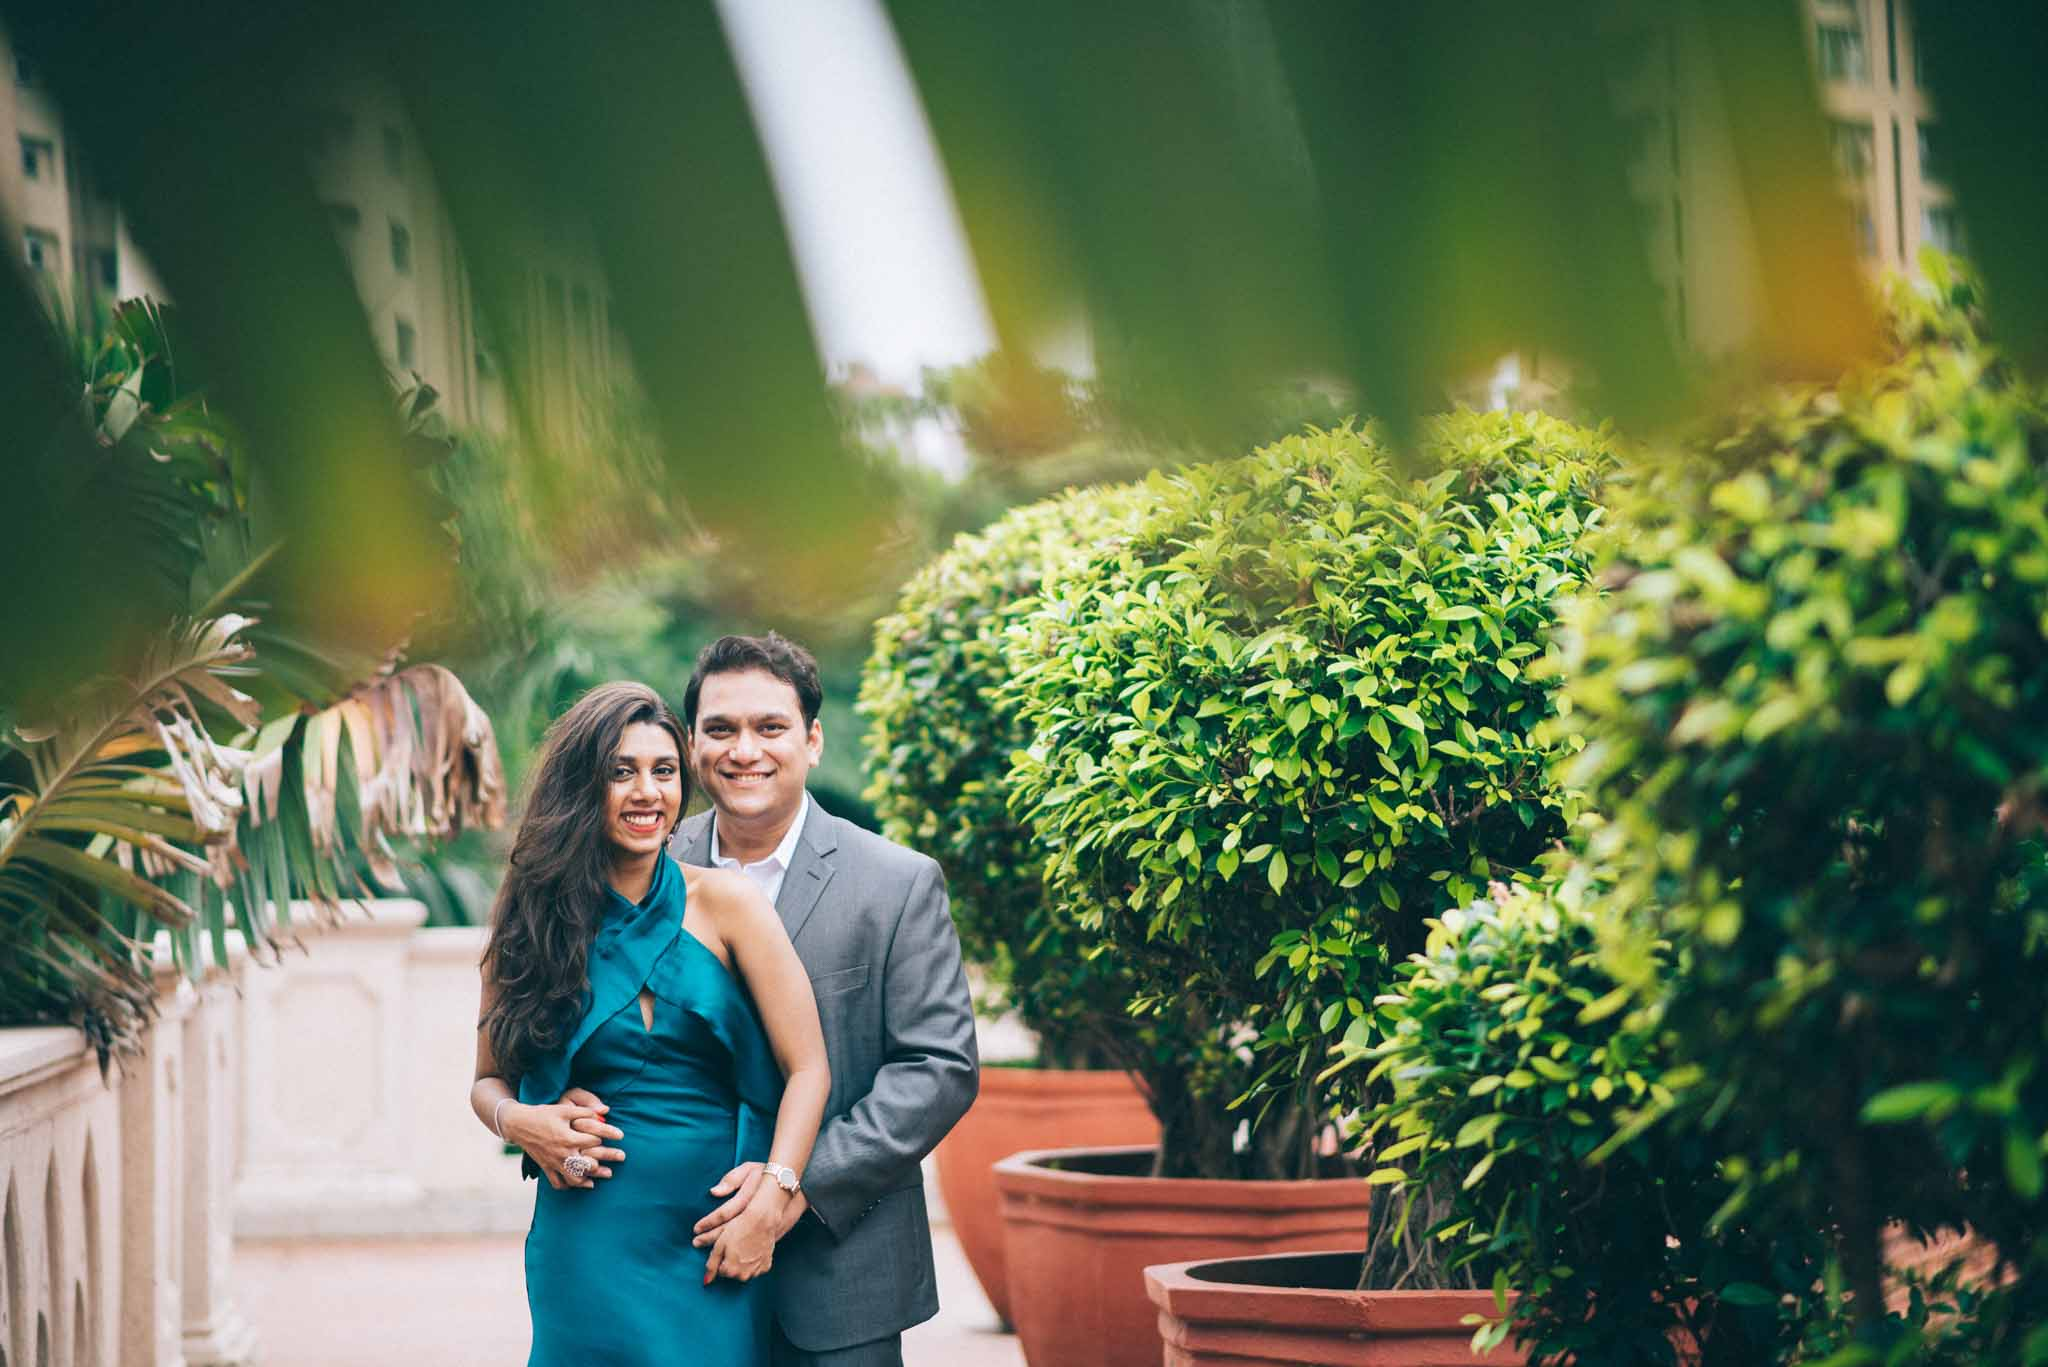 Monica-Shiv-Pre-Wedding-Mumbai-ITC-Parel-11